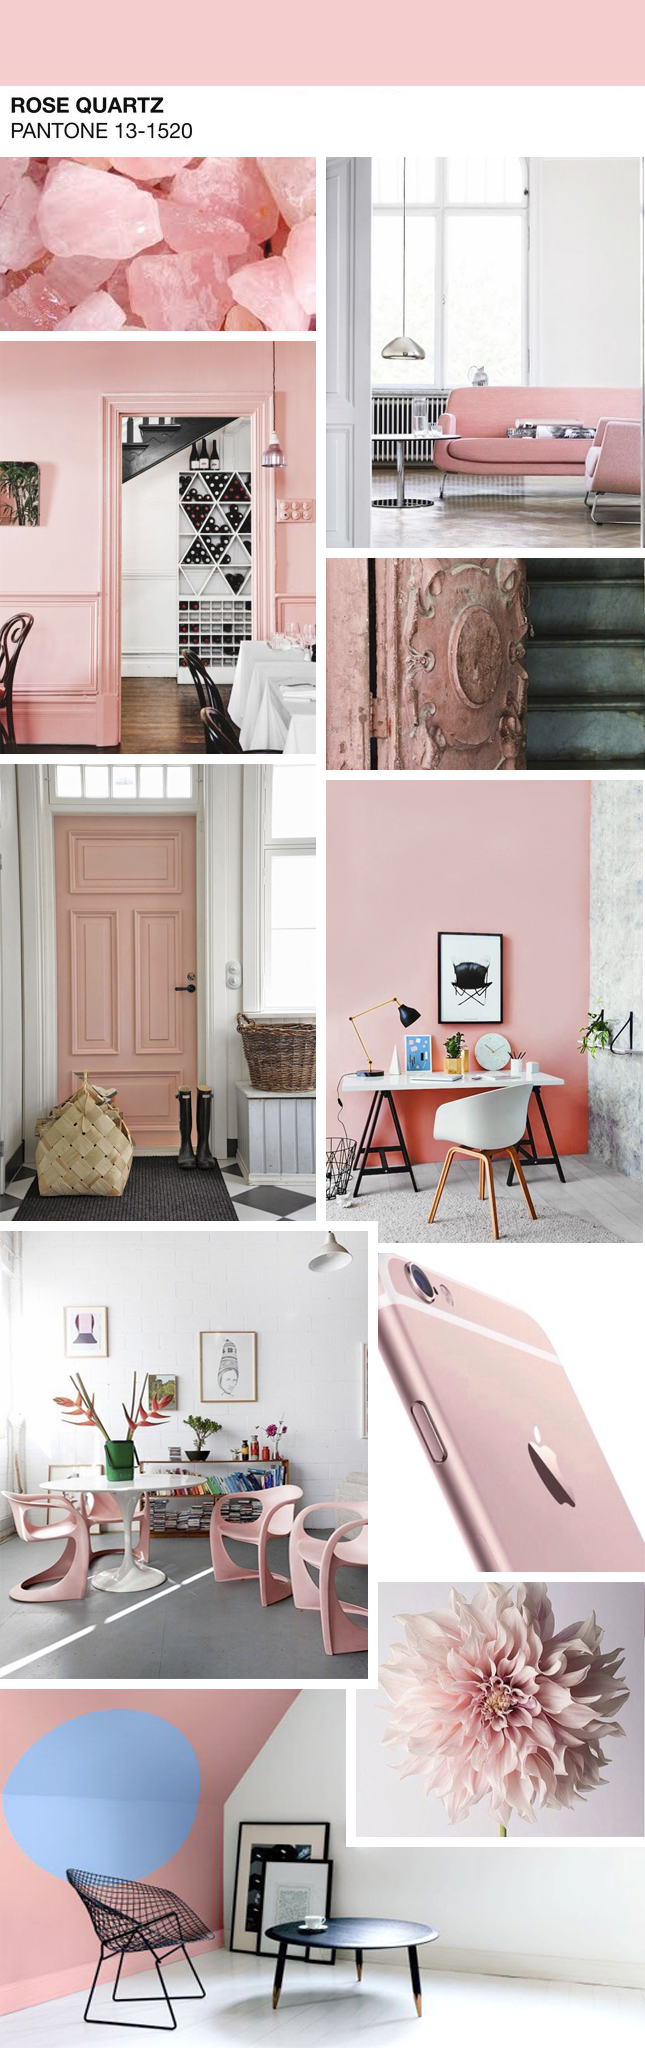 decoradornet-pantone-2016-02